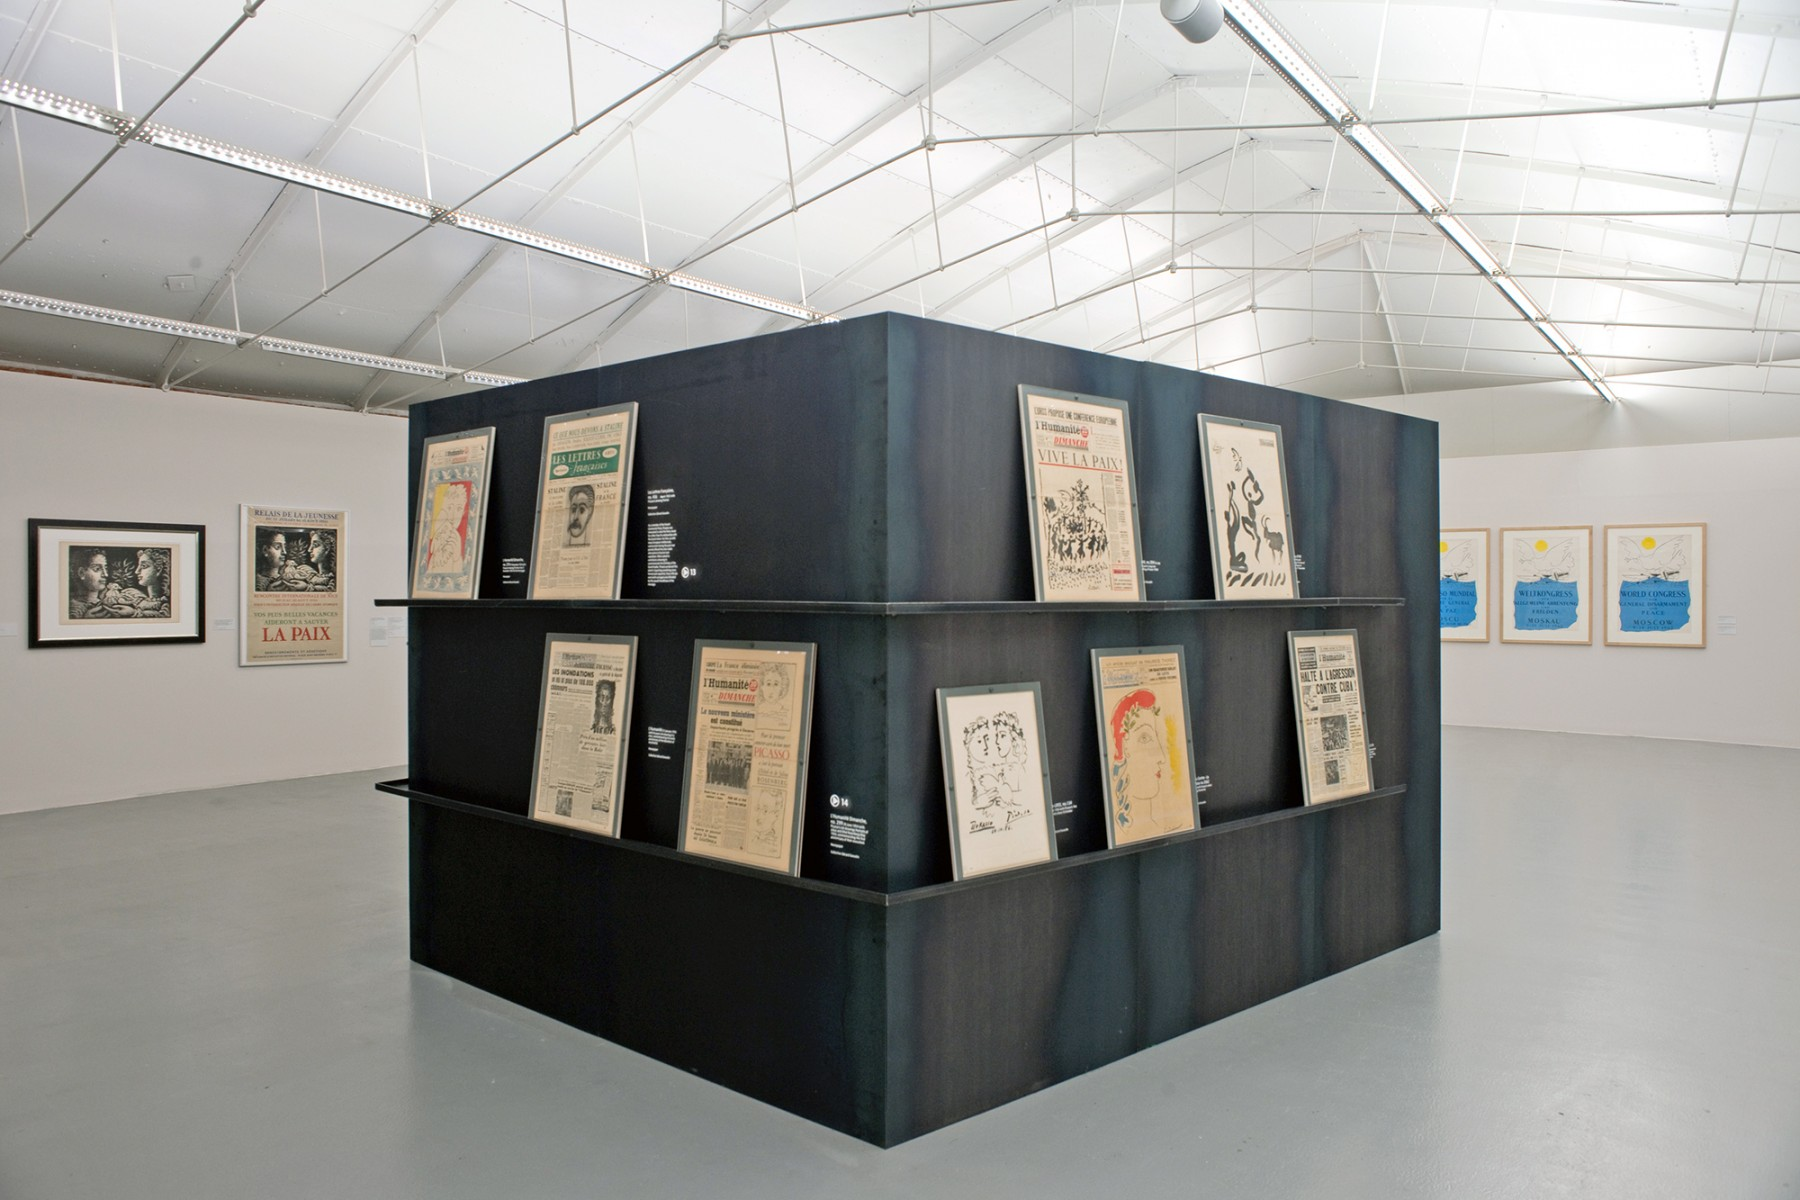 Picasso-Peace-and-Freedom-Tate-Liverpool-design-steel-exhibition-art-Jamie-Fobert-Architects-1